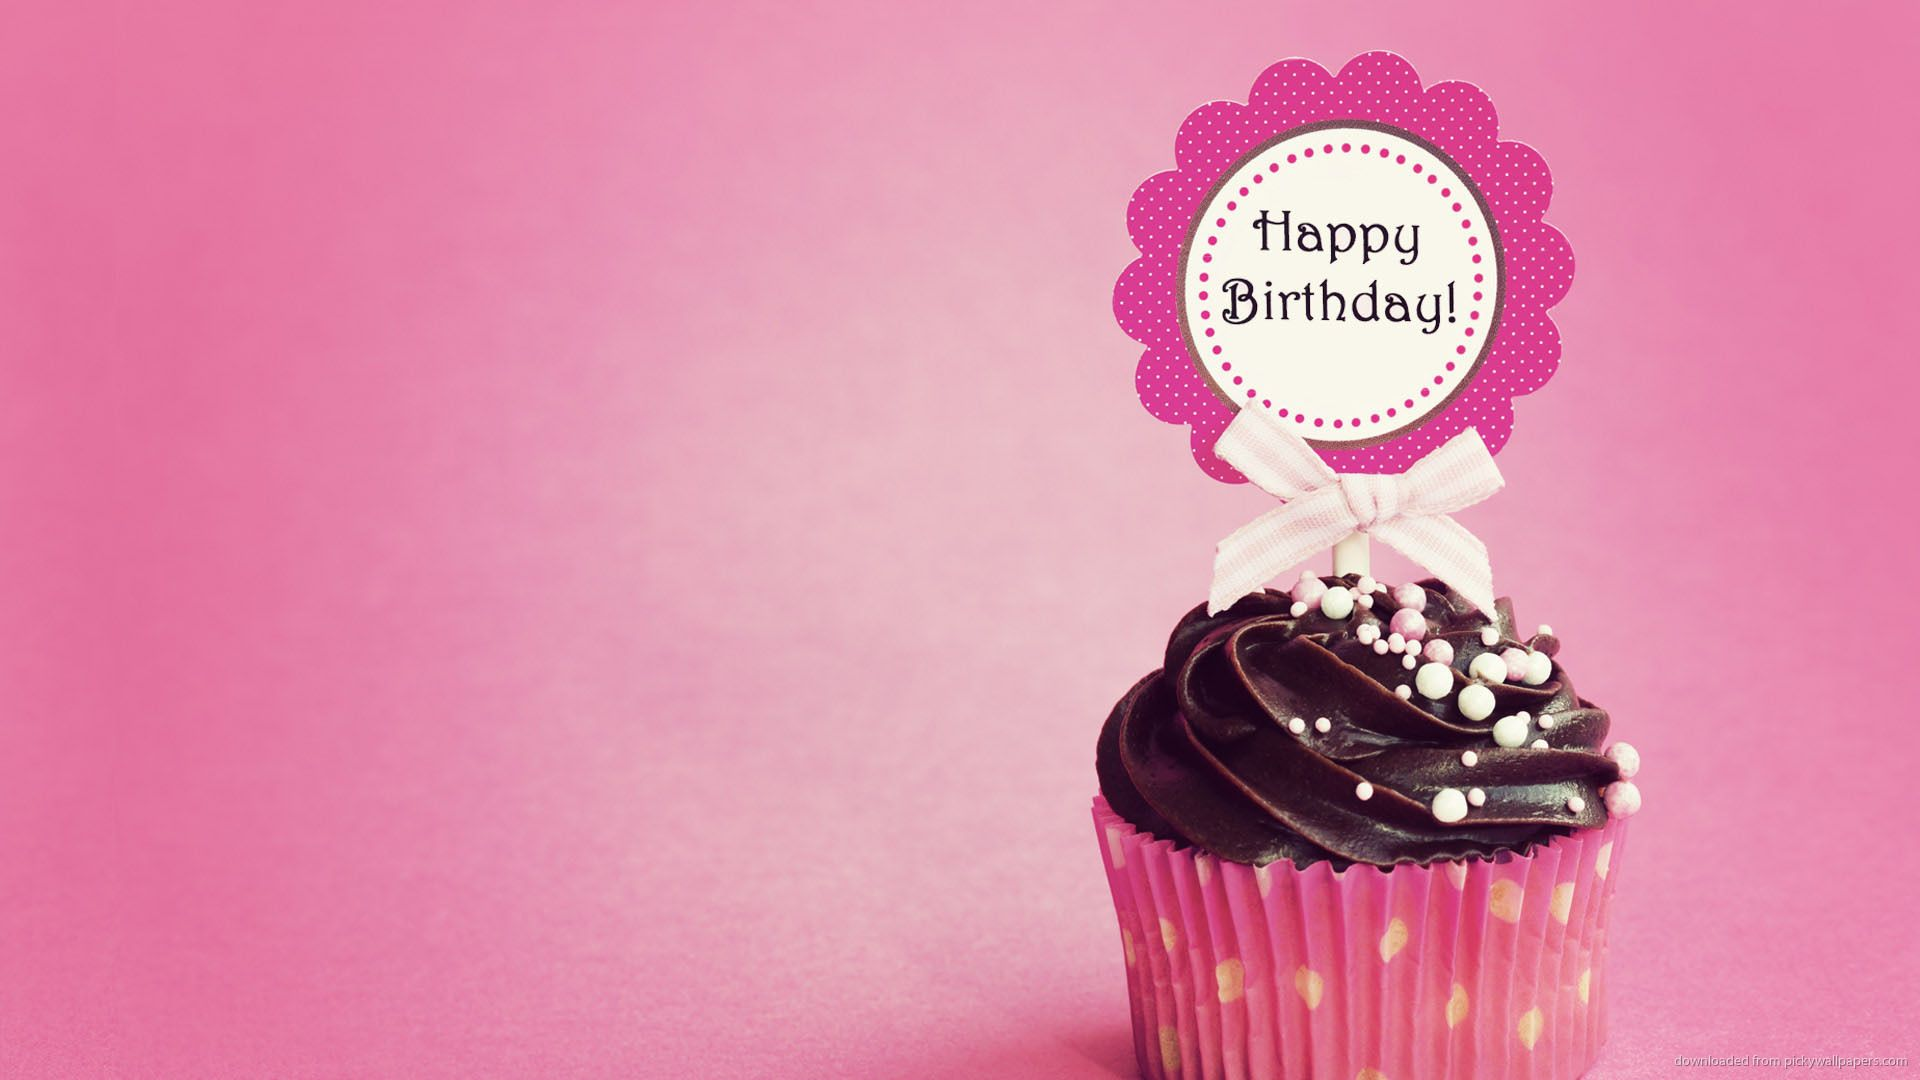 1920x1040 Cupcake Backgrounds Download